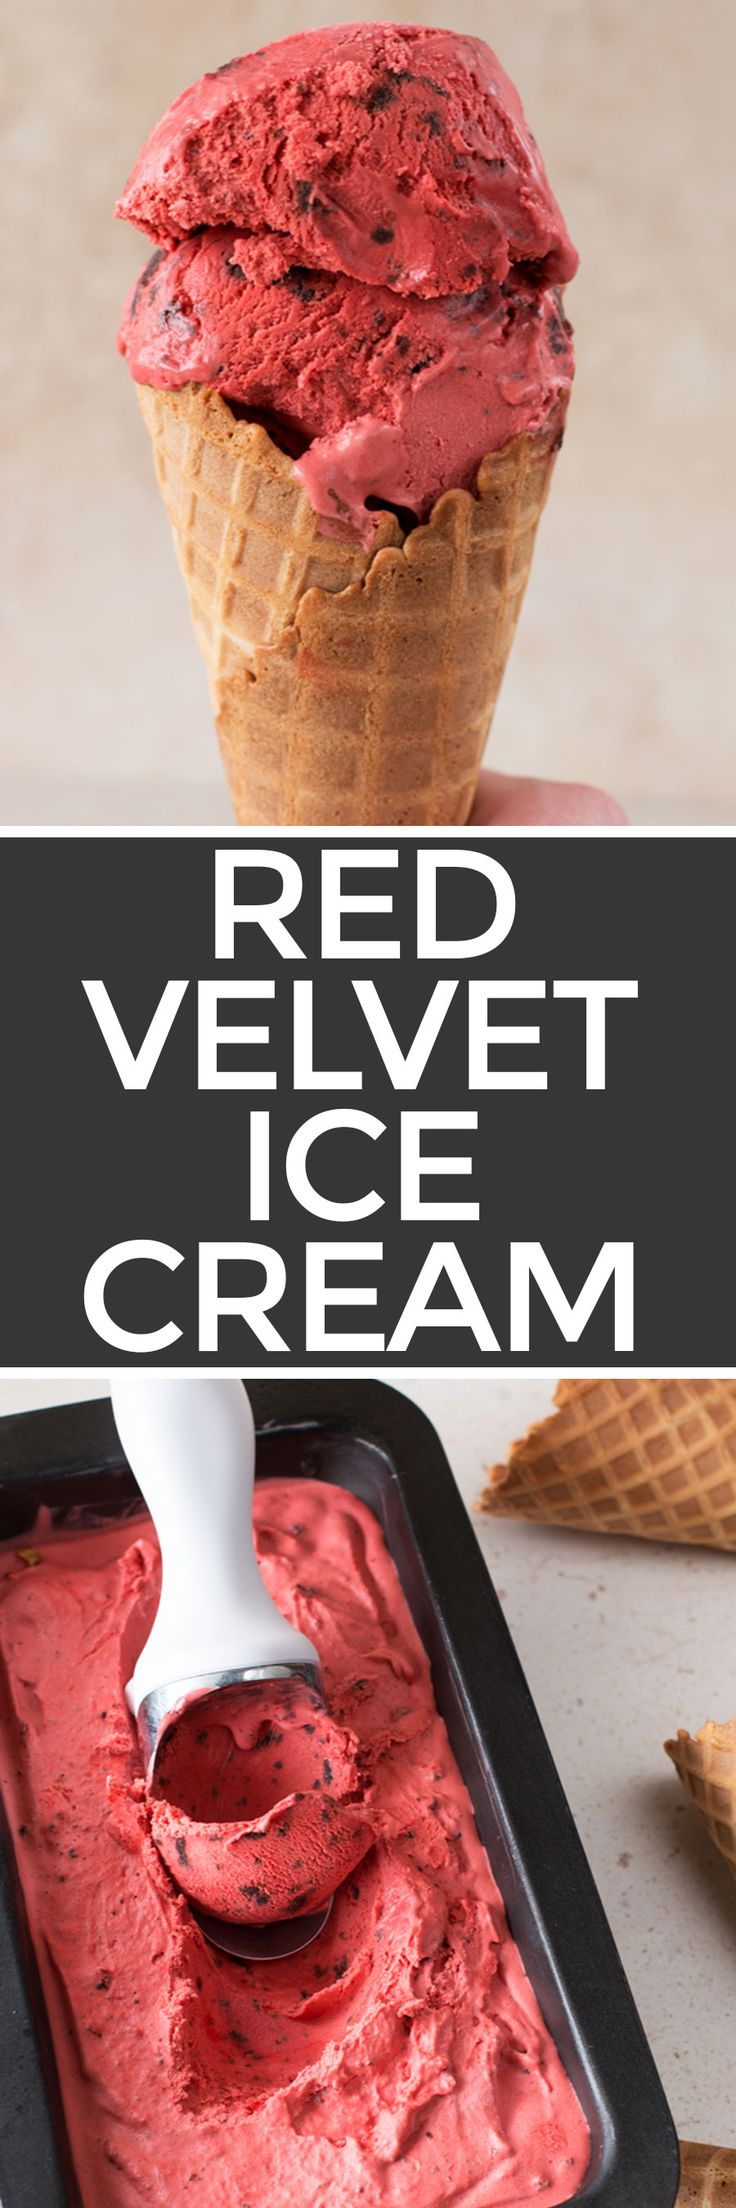 Red Velvet Ice Cream with Brownie Chunks – Cake 'n Knife